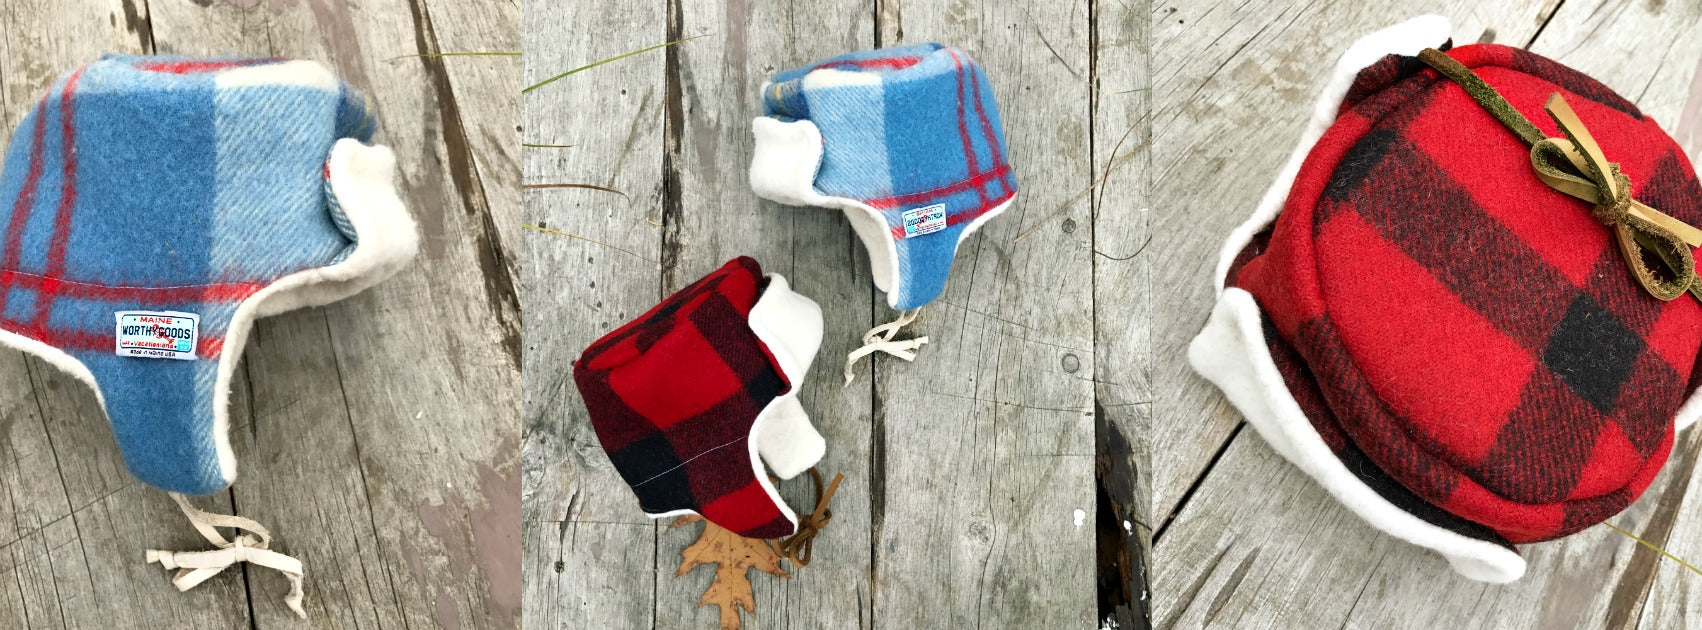 Maine Little Trapper hats for babies and kids handmade by worthygoods.